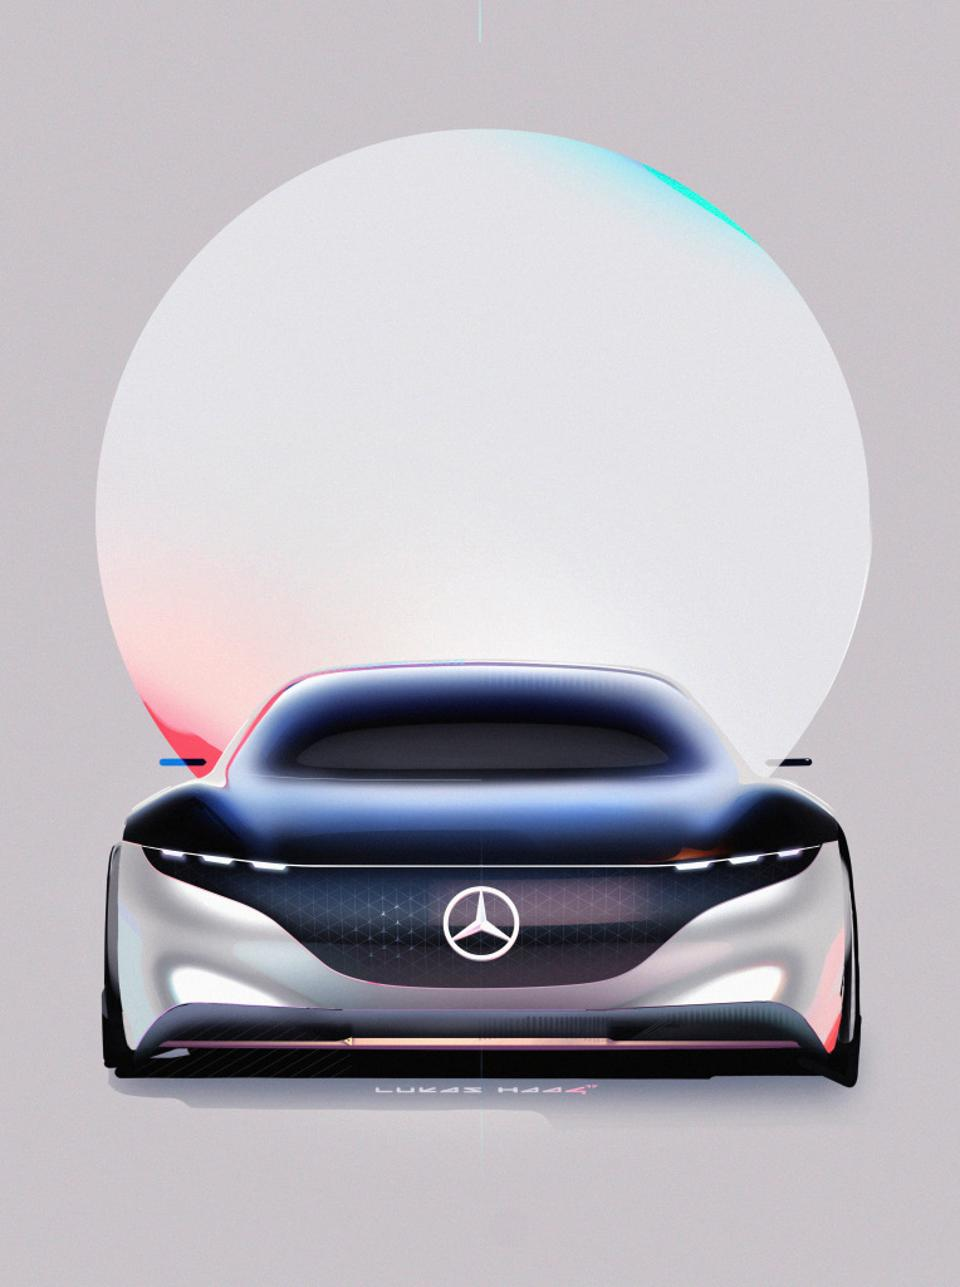 Mercedes-Benz Vision EQS represents what the pinnacle S-Class will be as an electric car